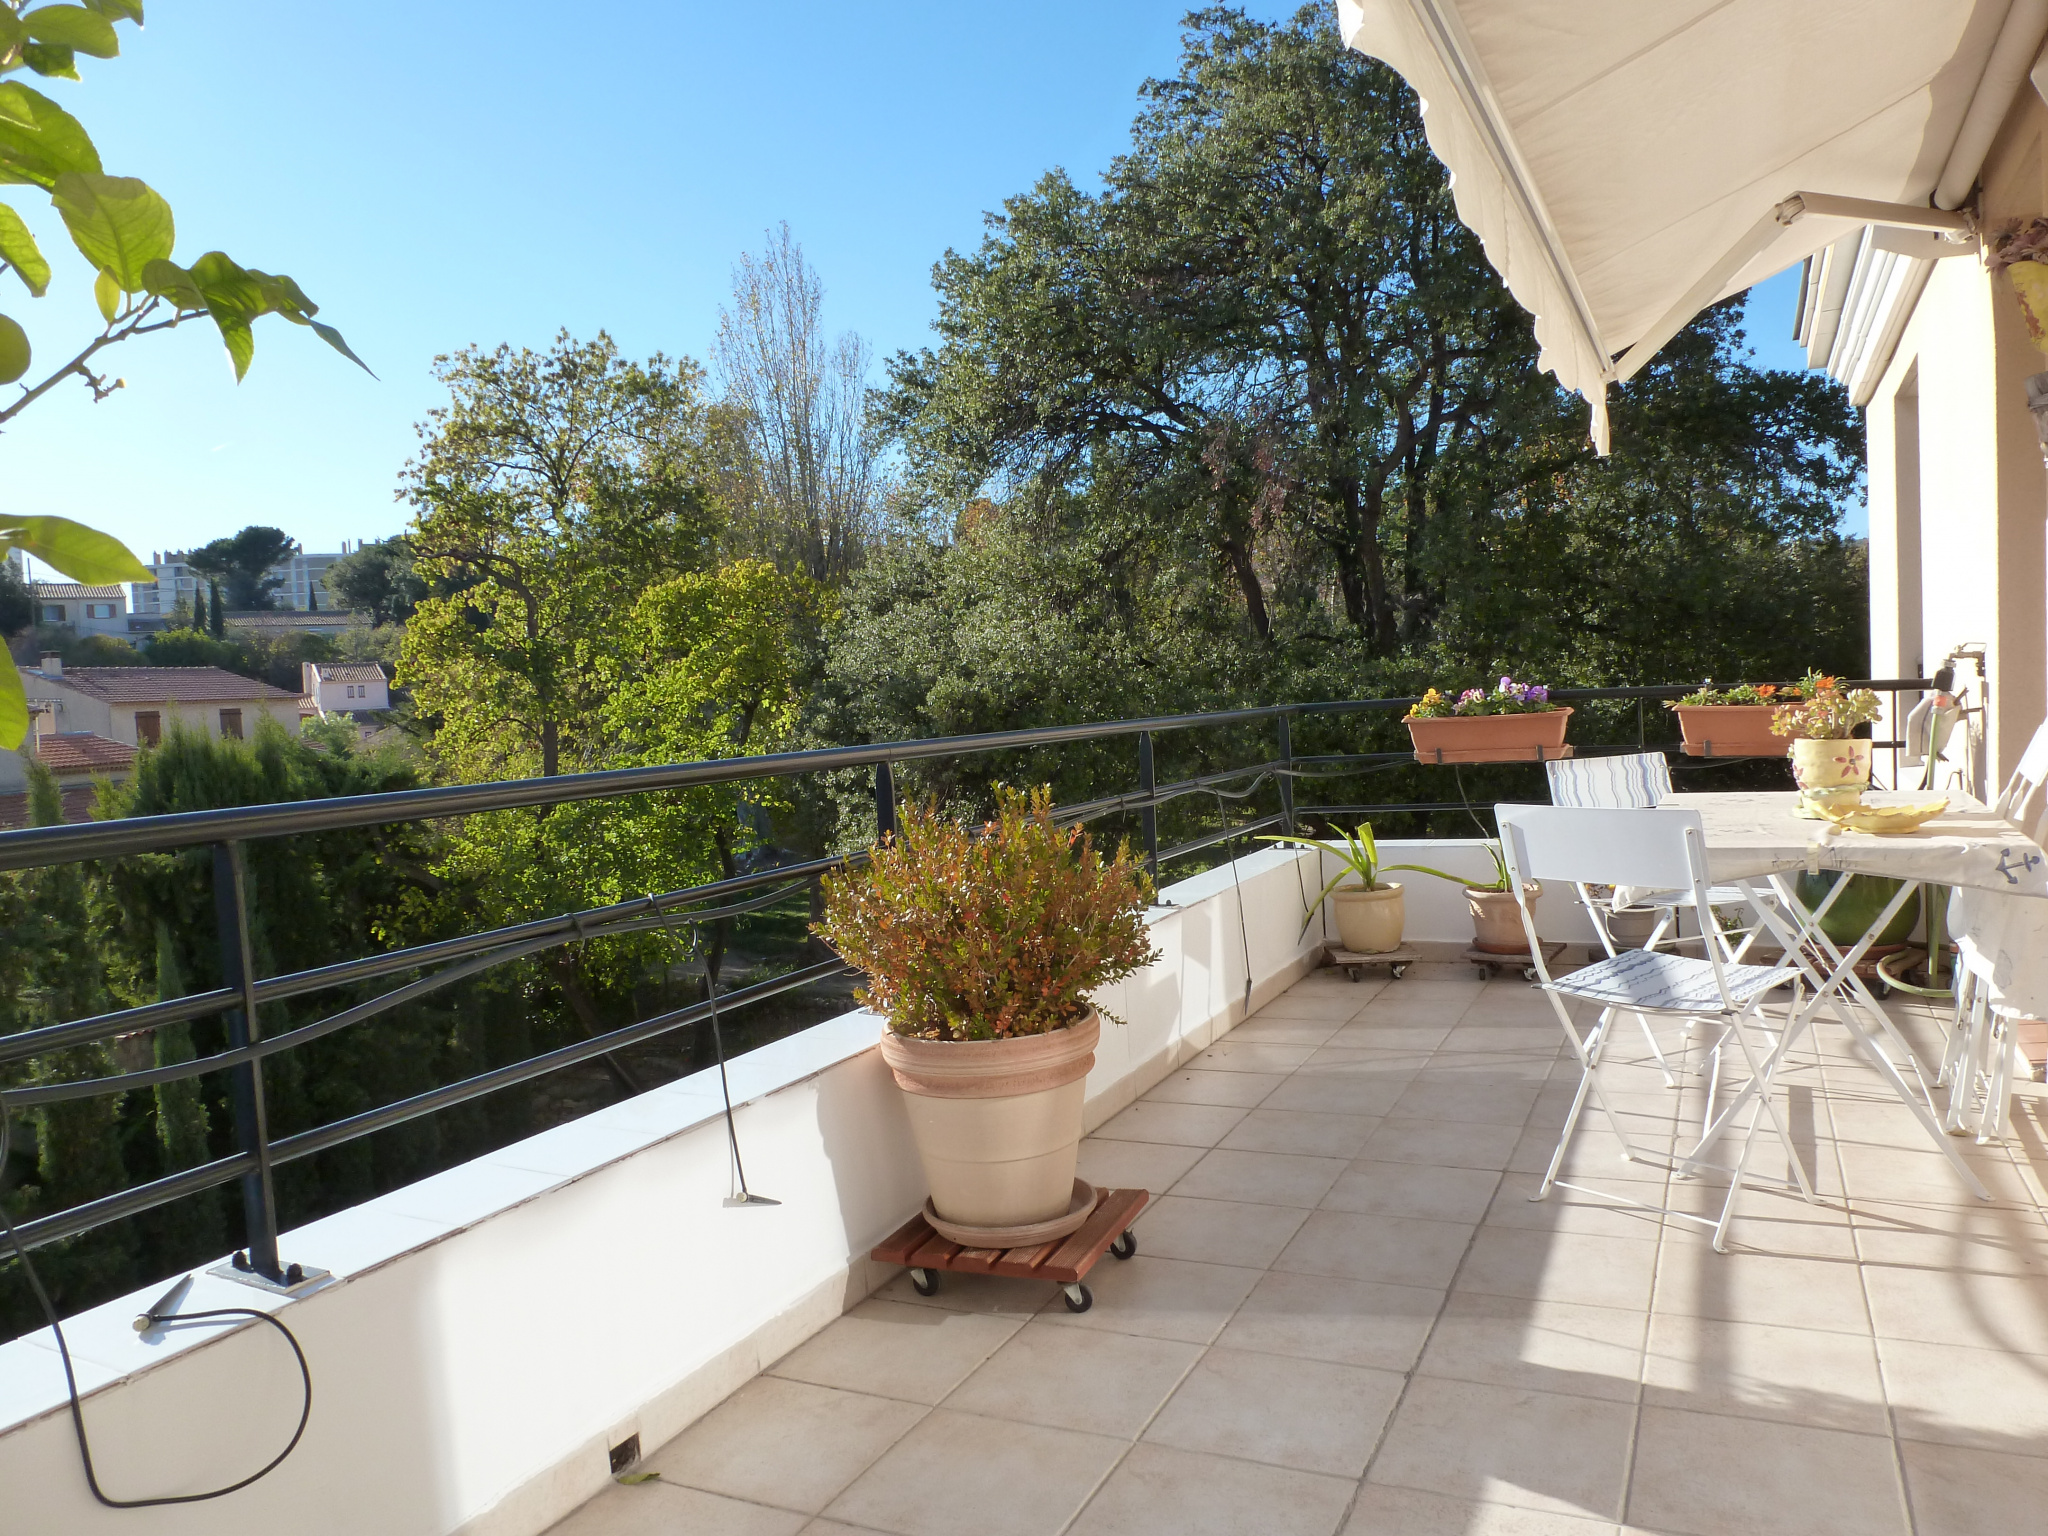 Vente appartement t4 terrasse parking garage marseille for Appartement t4 avec terrasse marseille